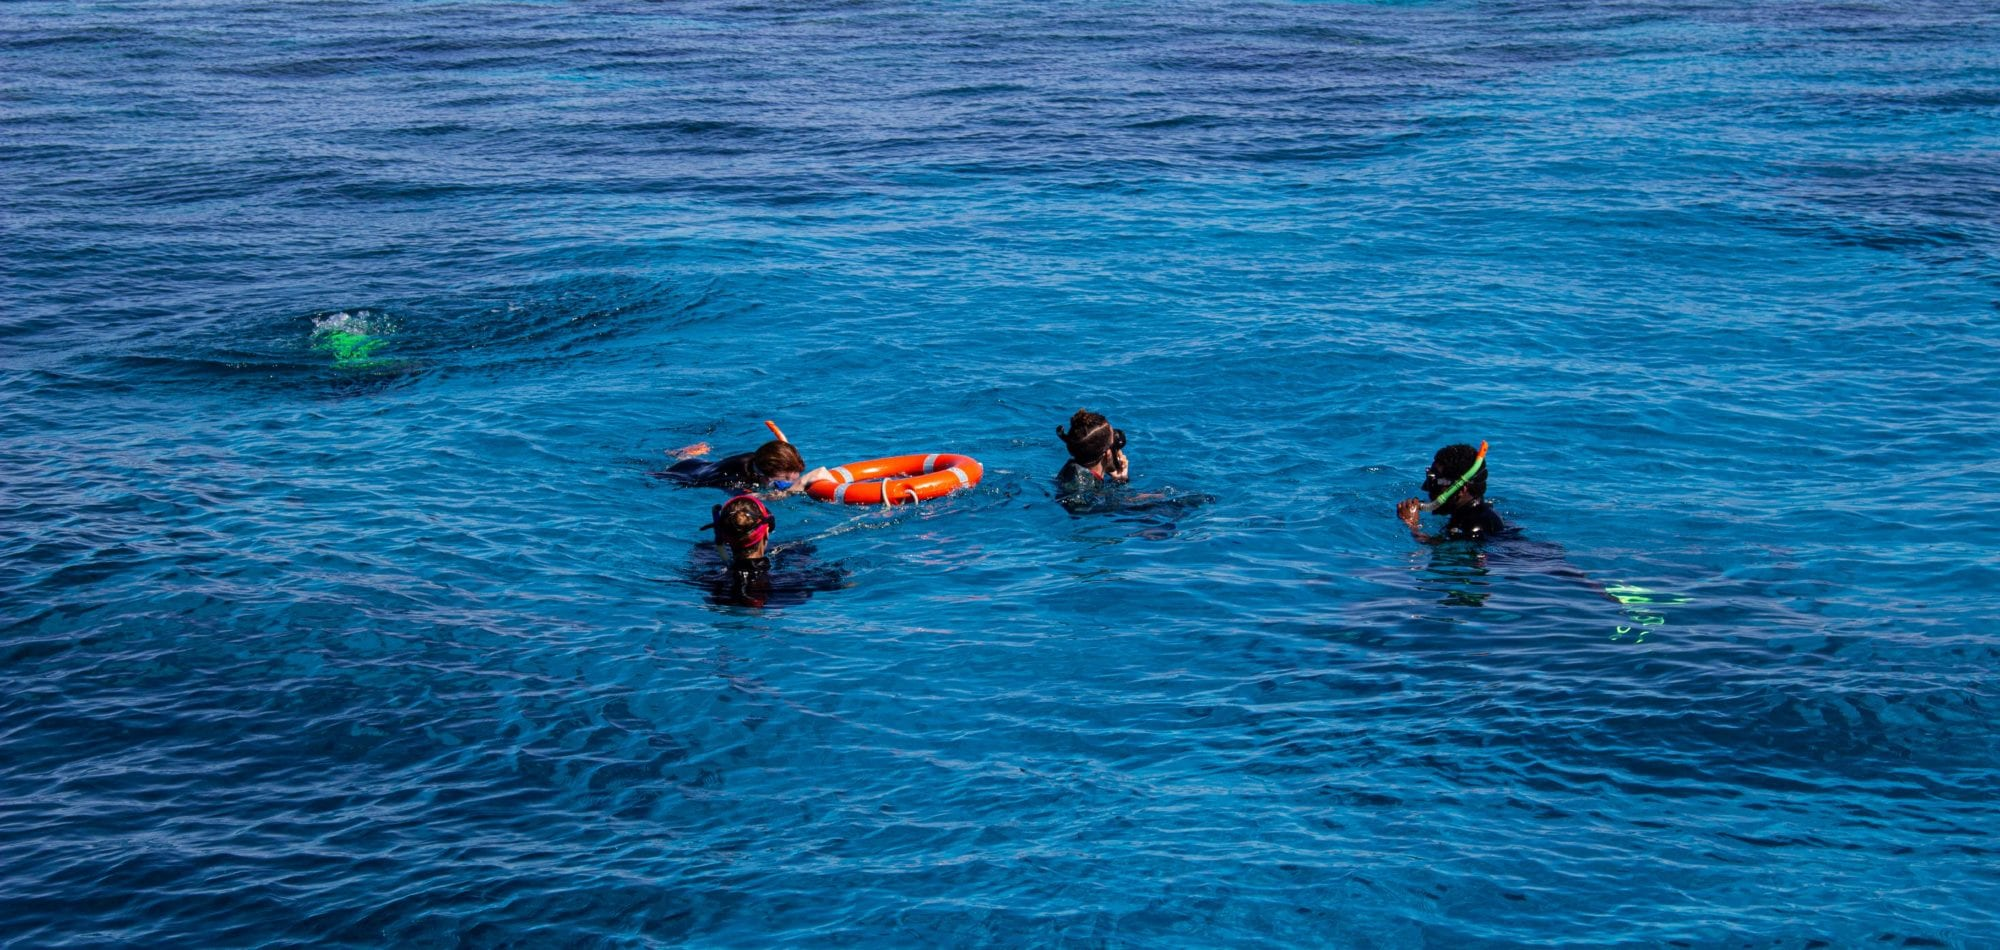 Cairns scuba diving day tour - snorkelers enjoying the Great Barrier Reef